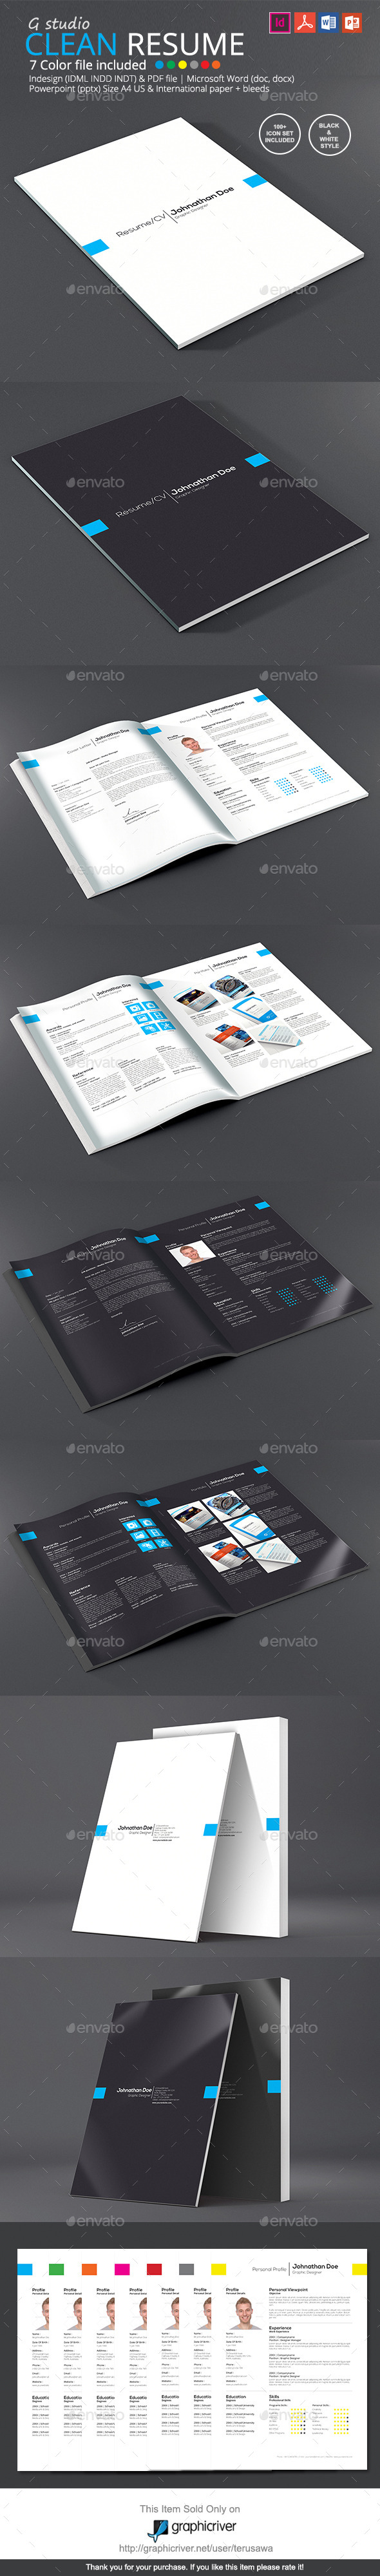 Gstudio Clean Resume Template By Terusawa  Graphicriver